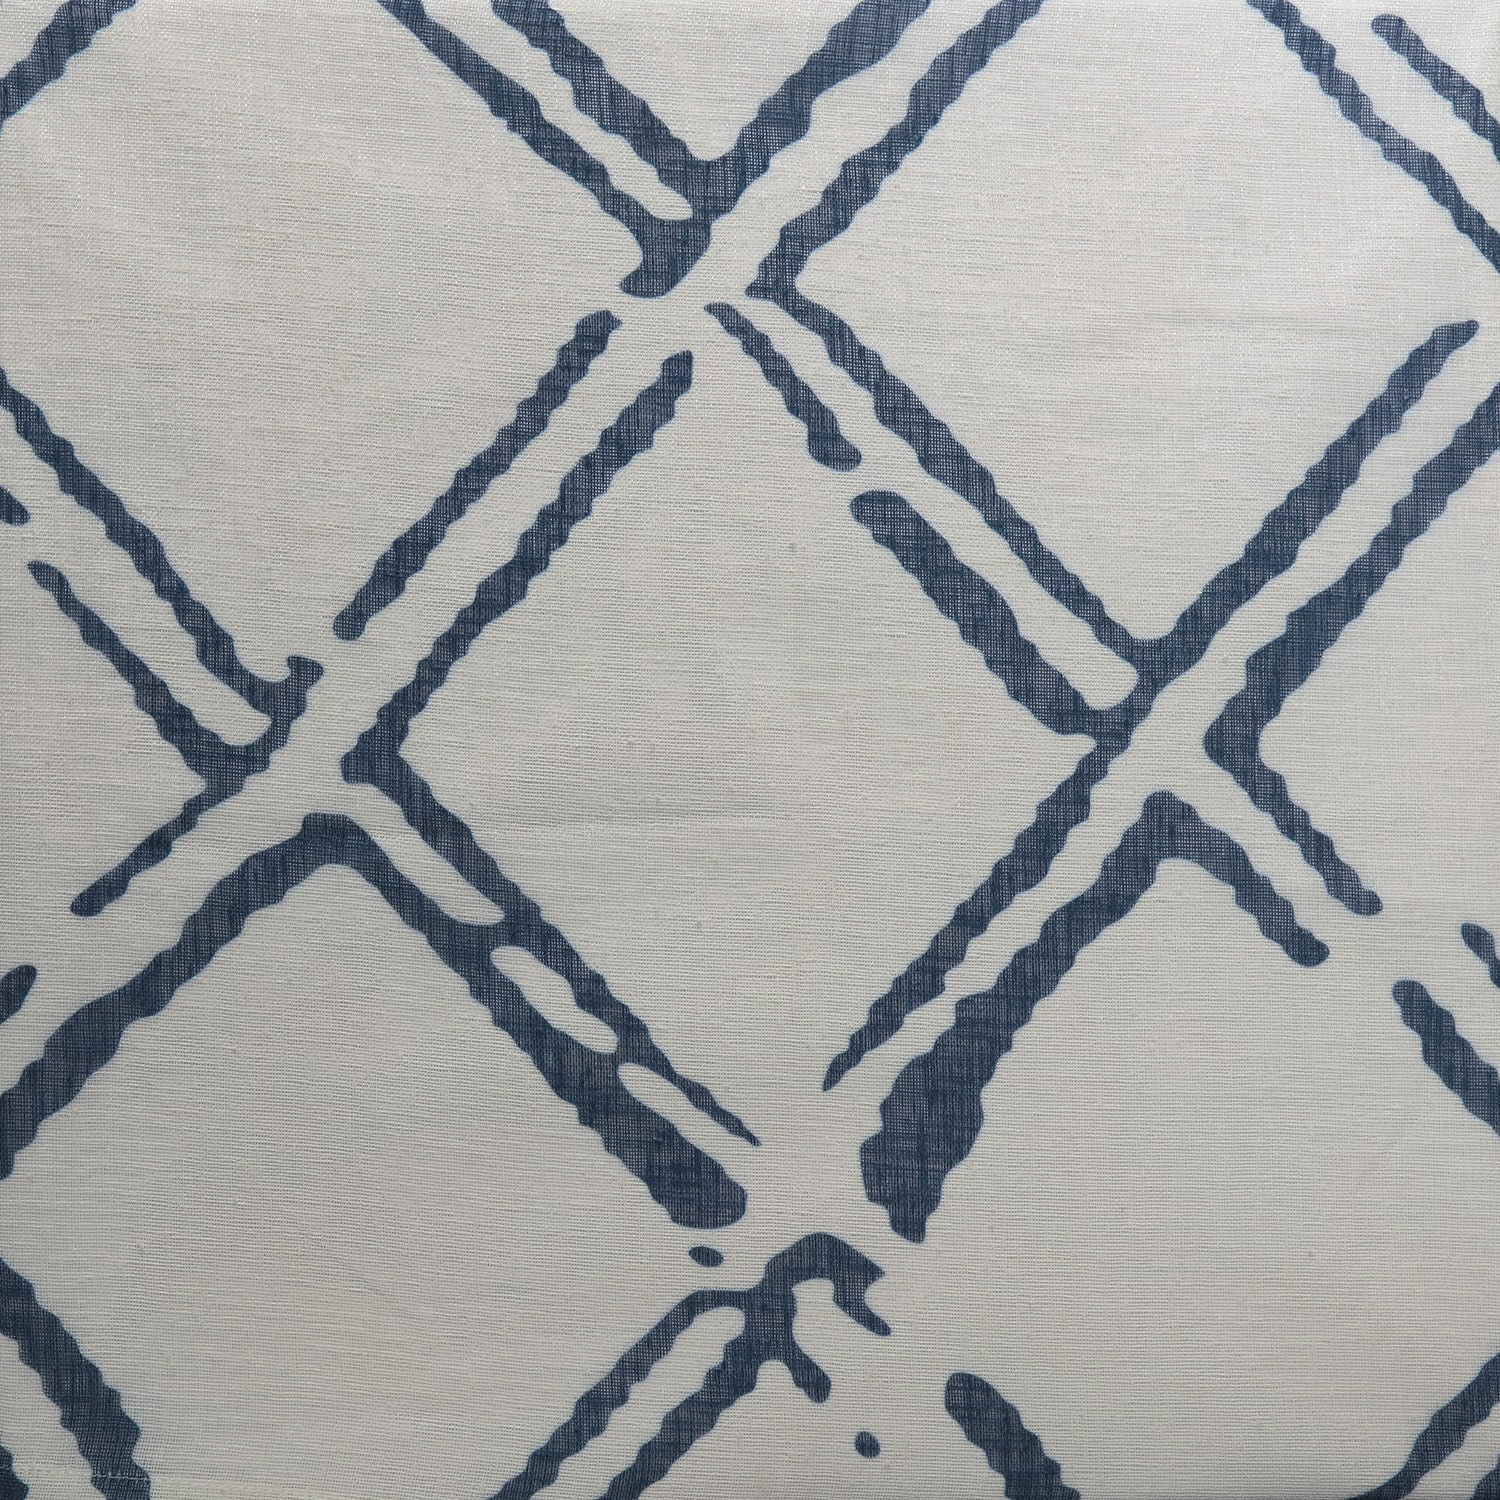 Normandy Blue Printed Faux Linen Sheer Fabric